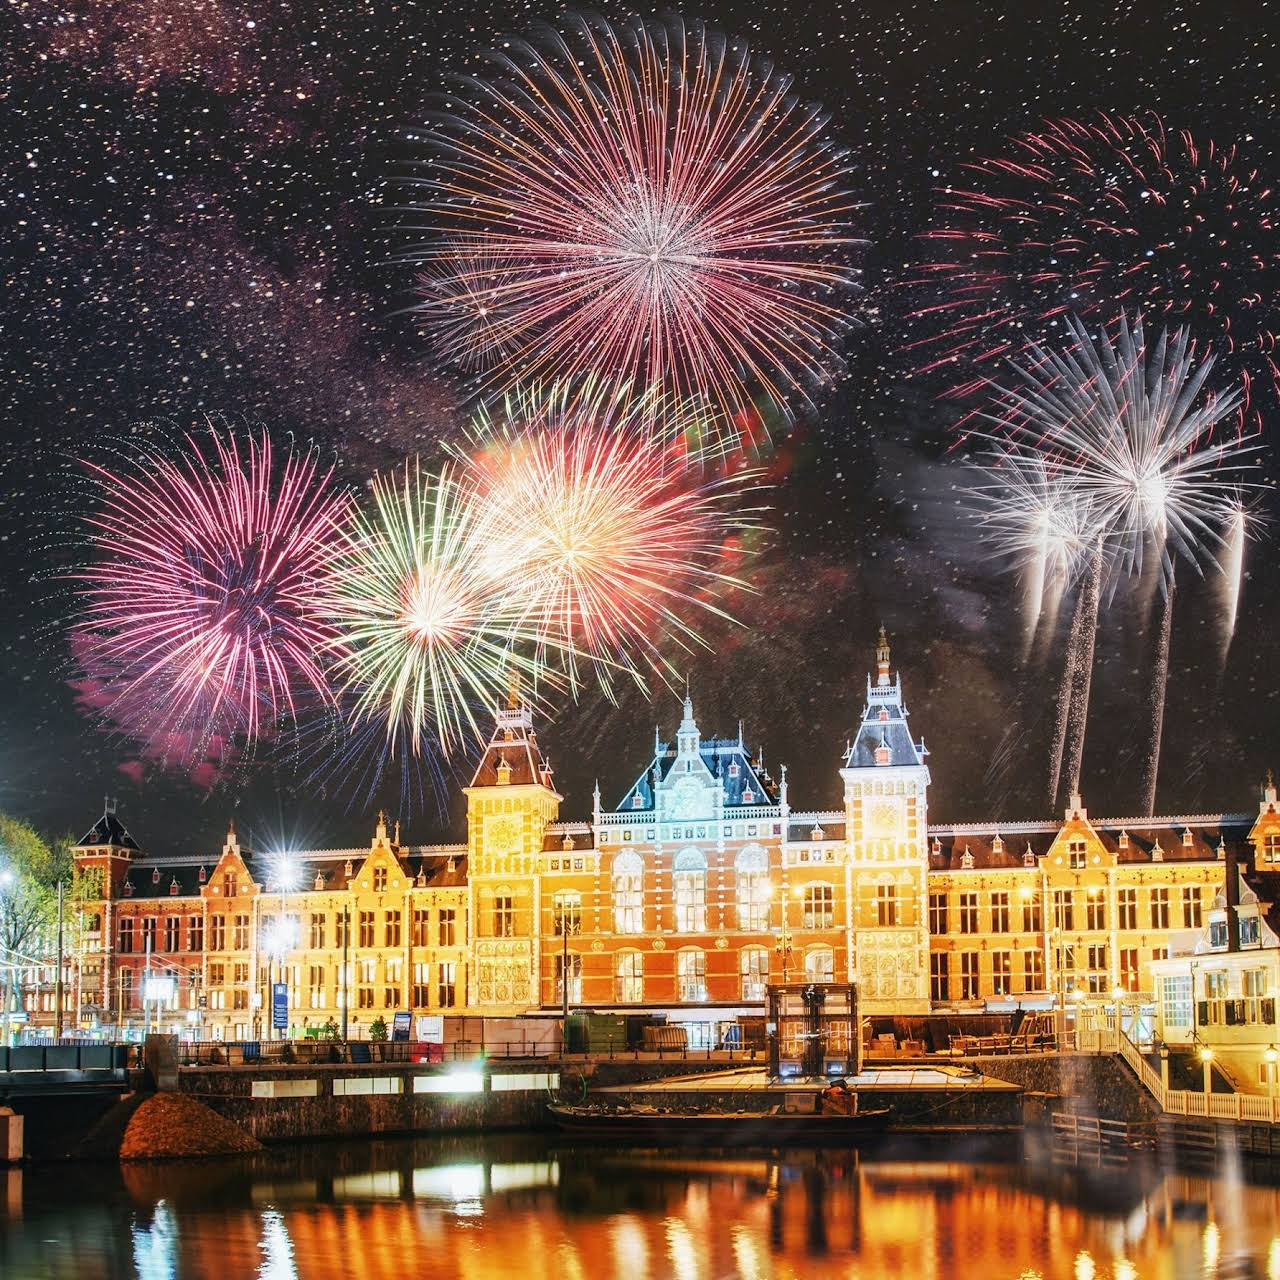 New Years Eve Amsterdam 2021 Amsterdam New Years Eve 2021 Discover The Best Parties Firework Display Where To Go And Things To Do Over Nye 2021 In Amsterdam